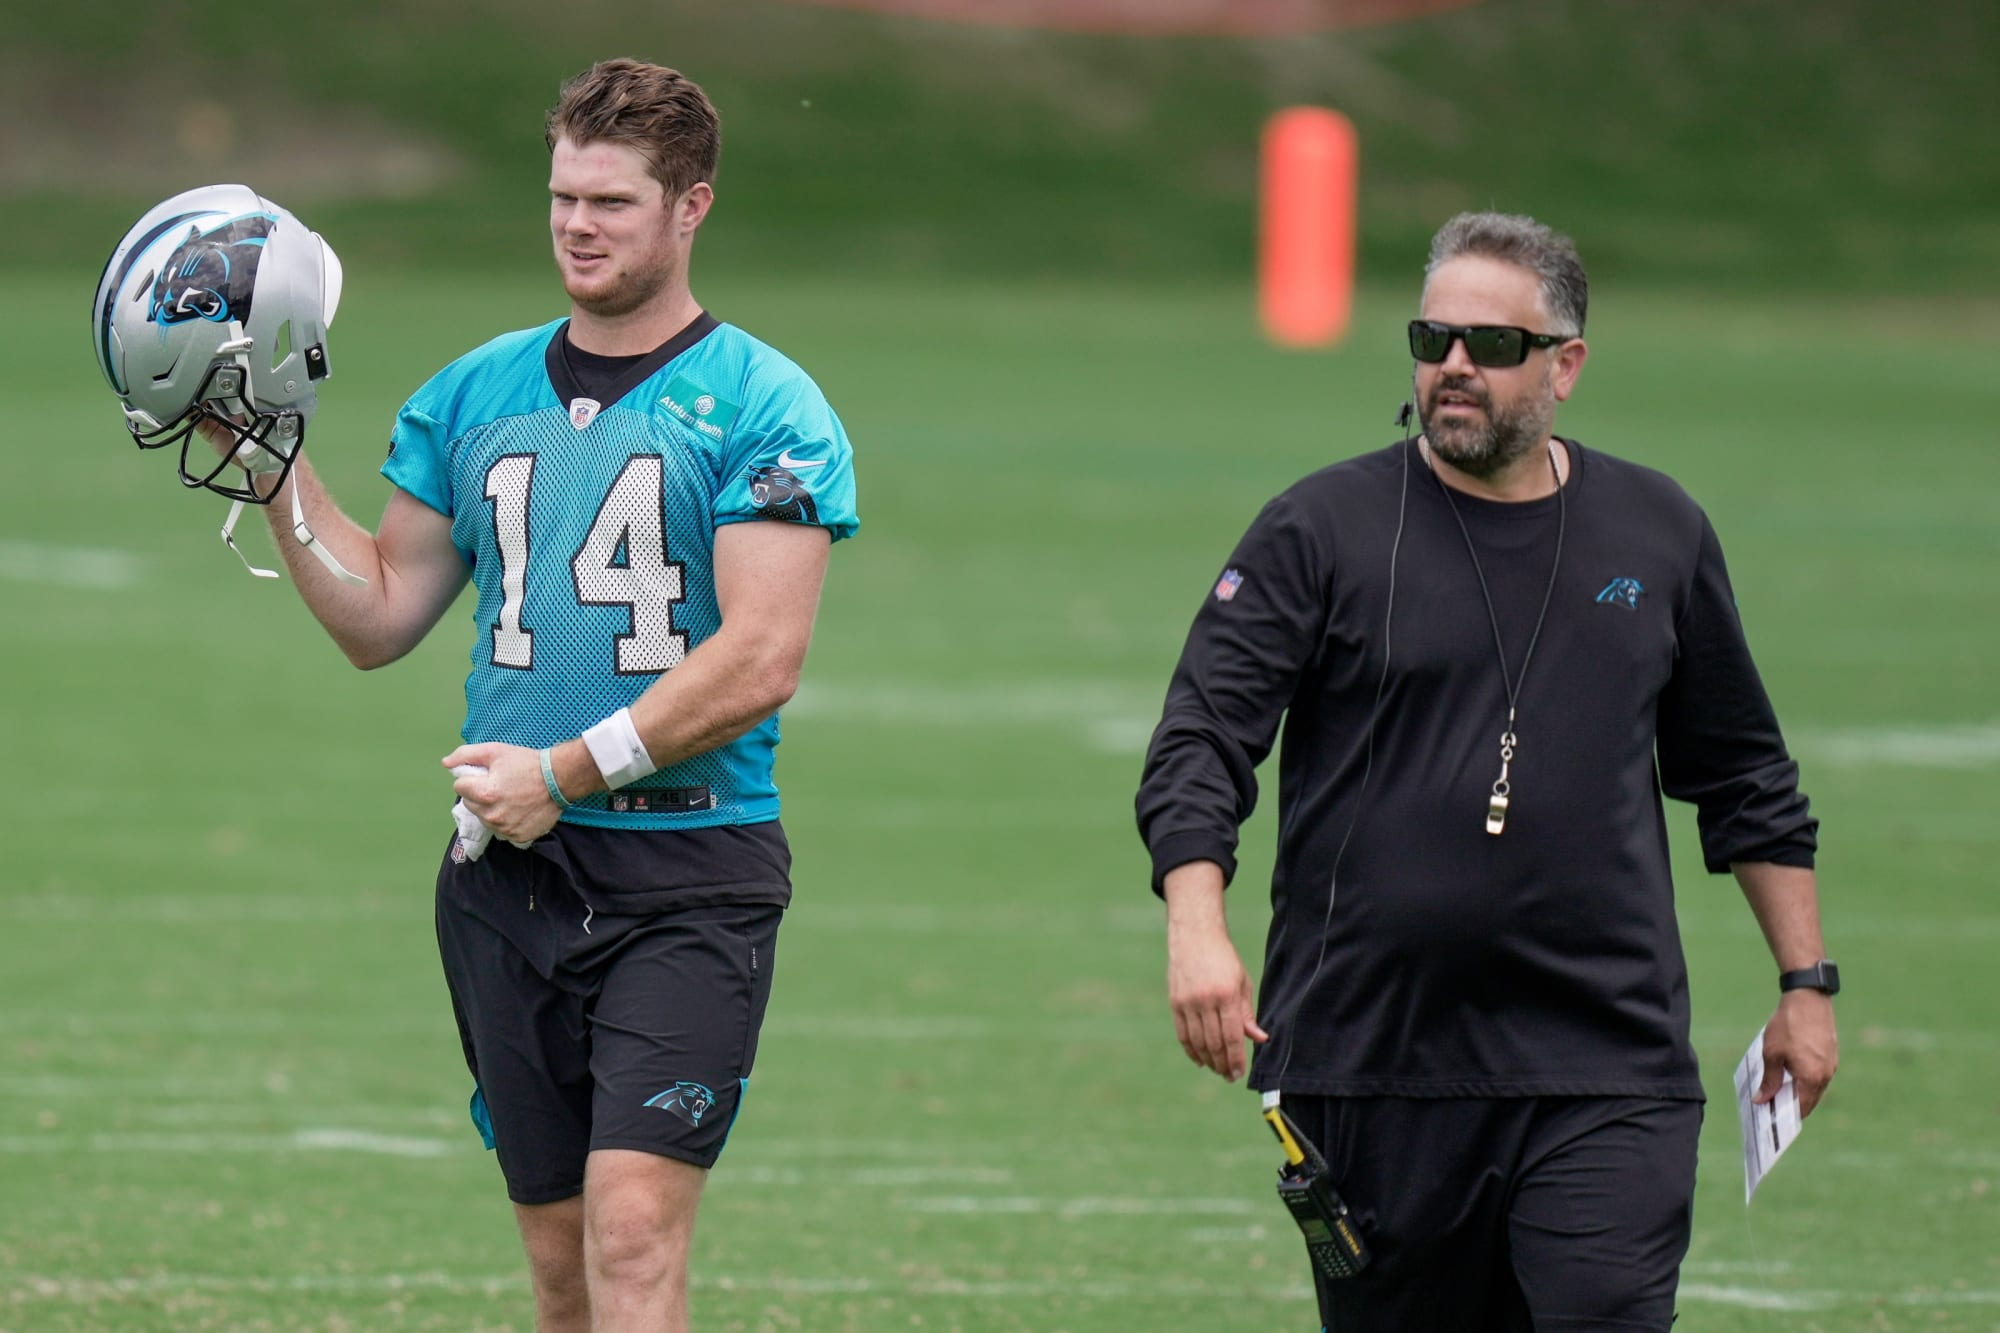 Panthers balance sheet: Offense in the black after major QB move